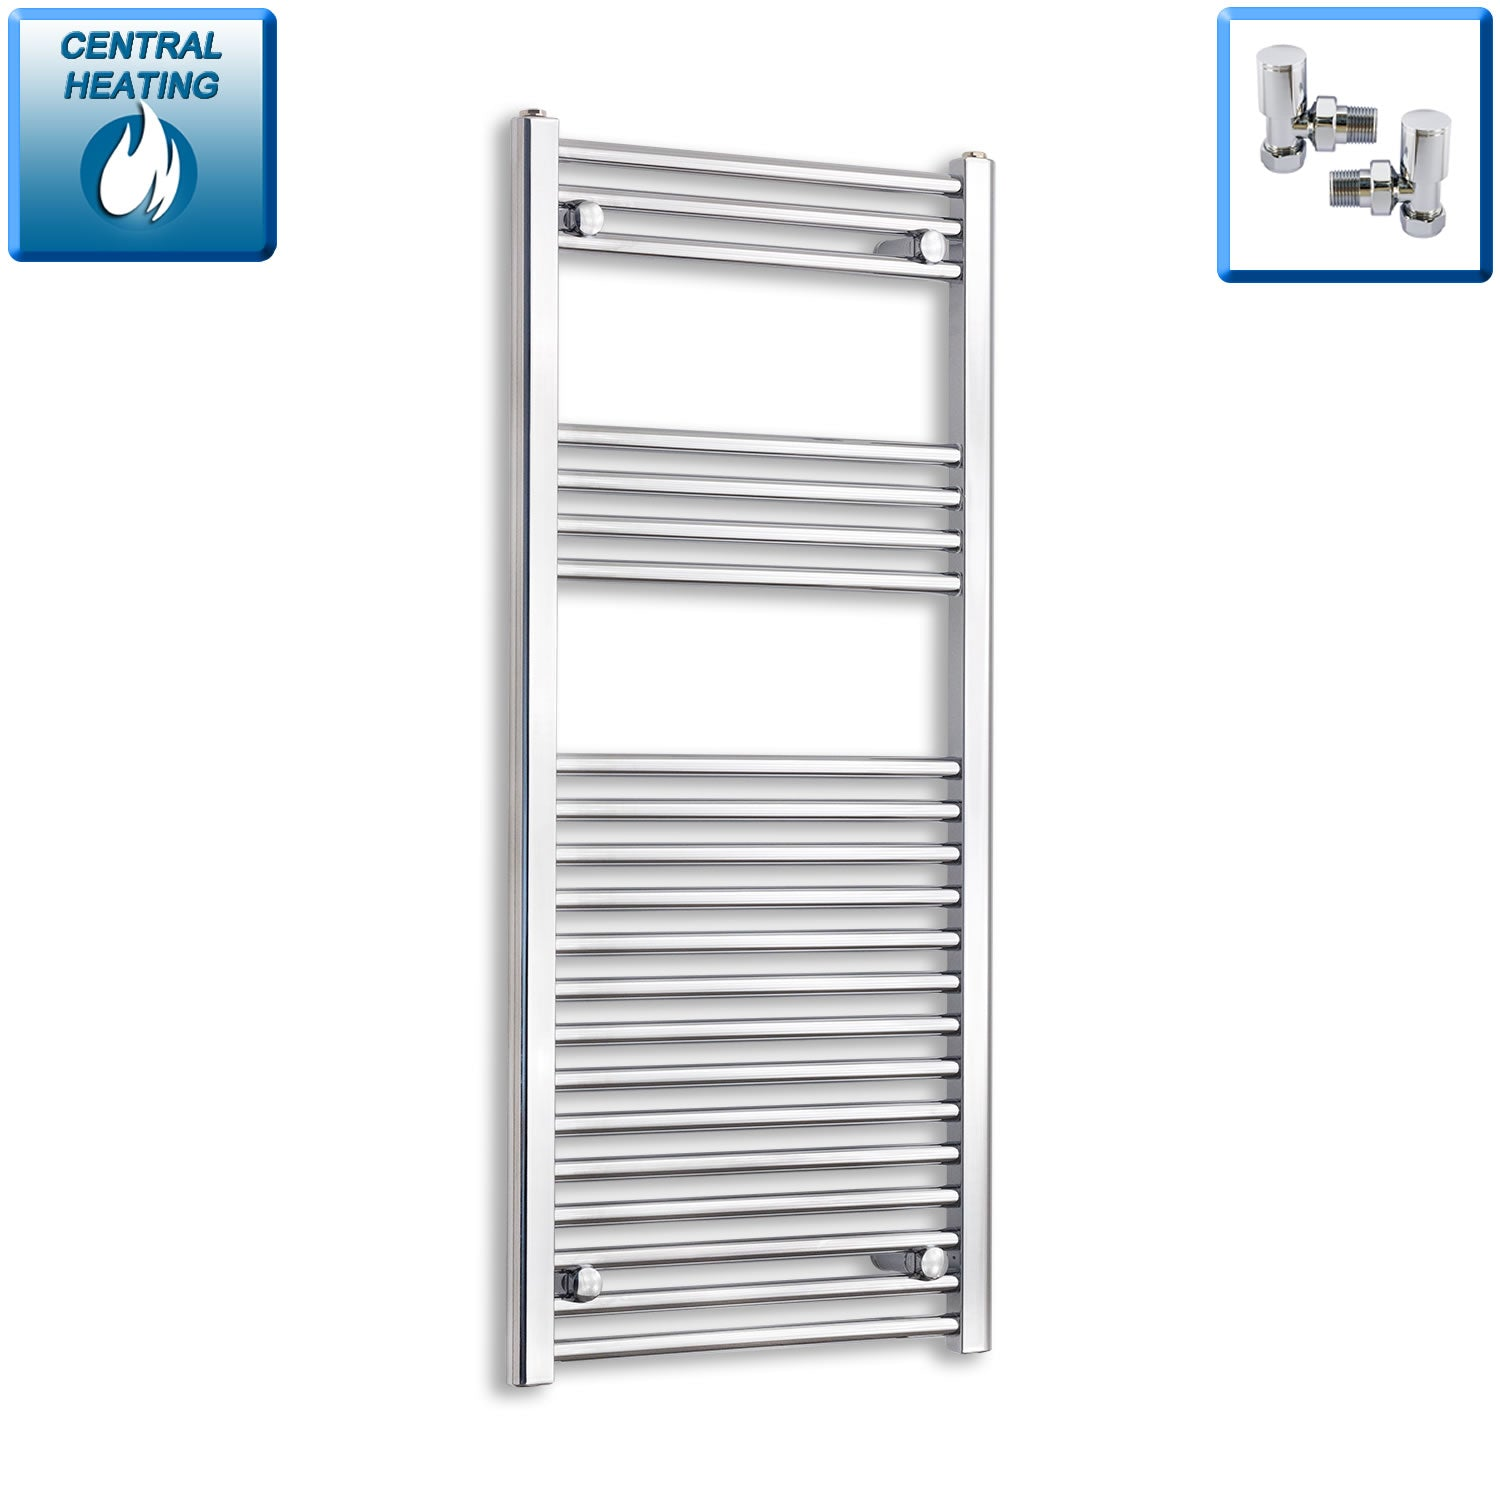 600mm Wide 1100mm High Chrome Towel Rail Radiator With Angled Valve